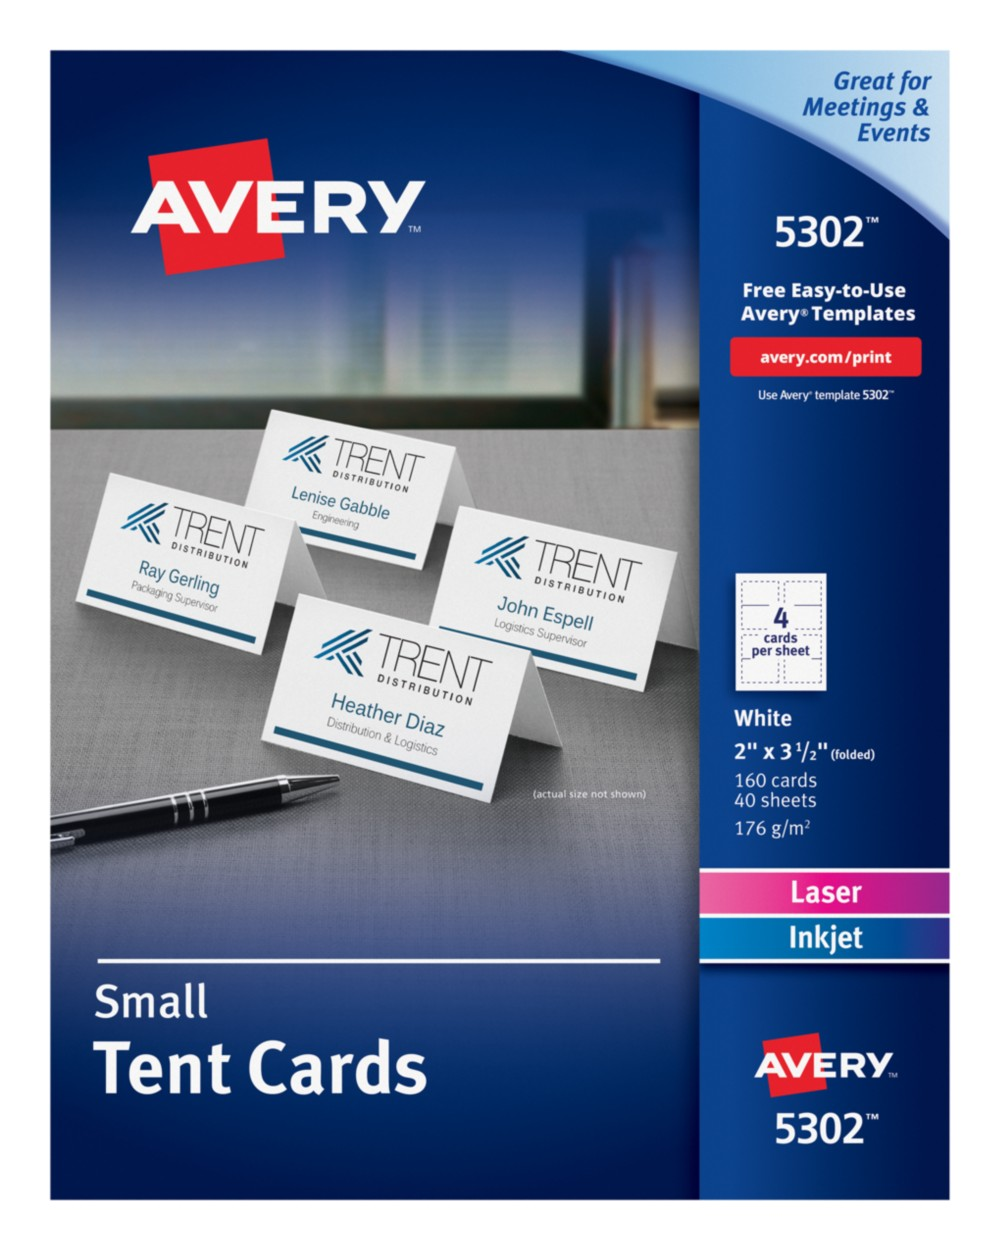 Small Tent Cards